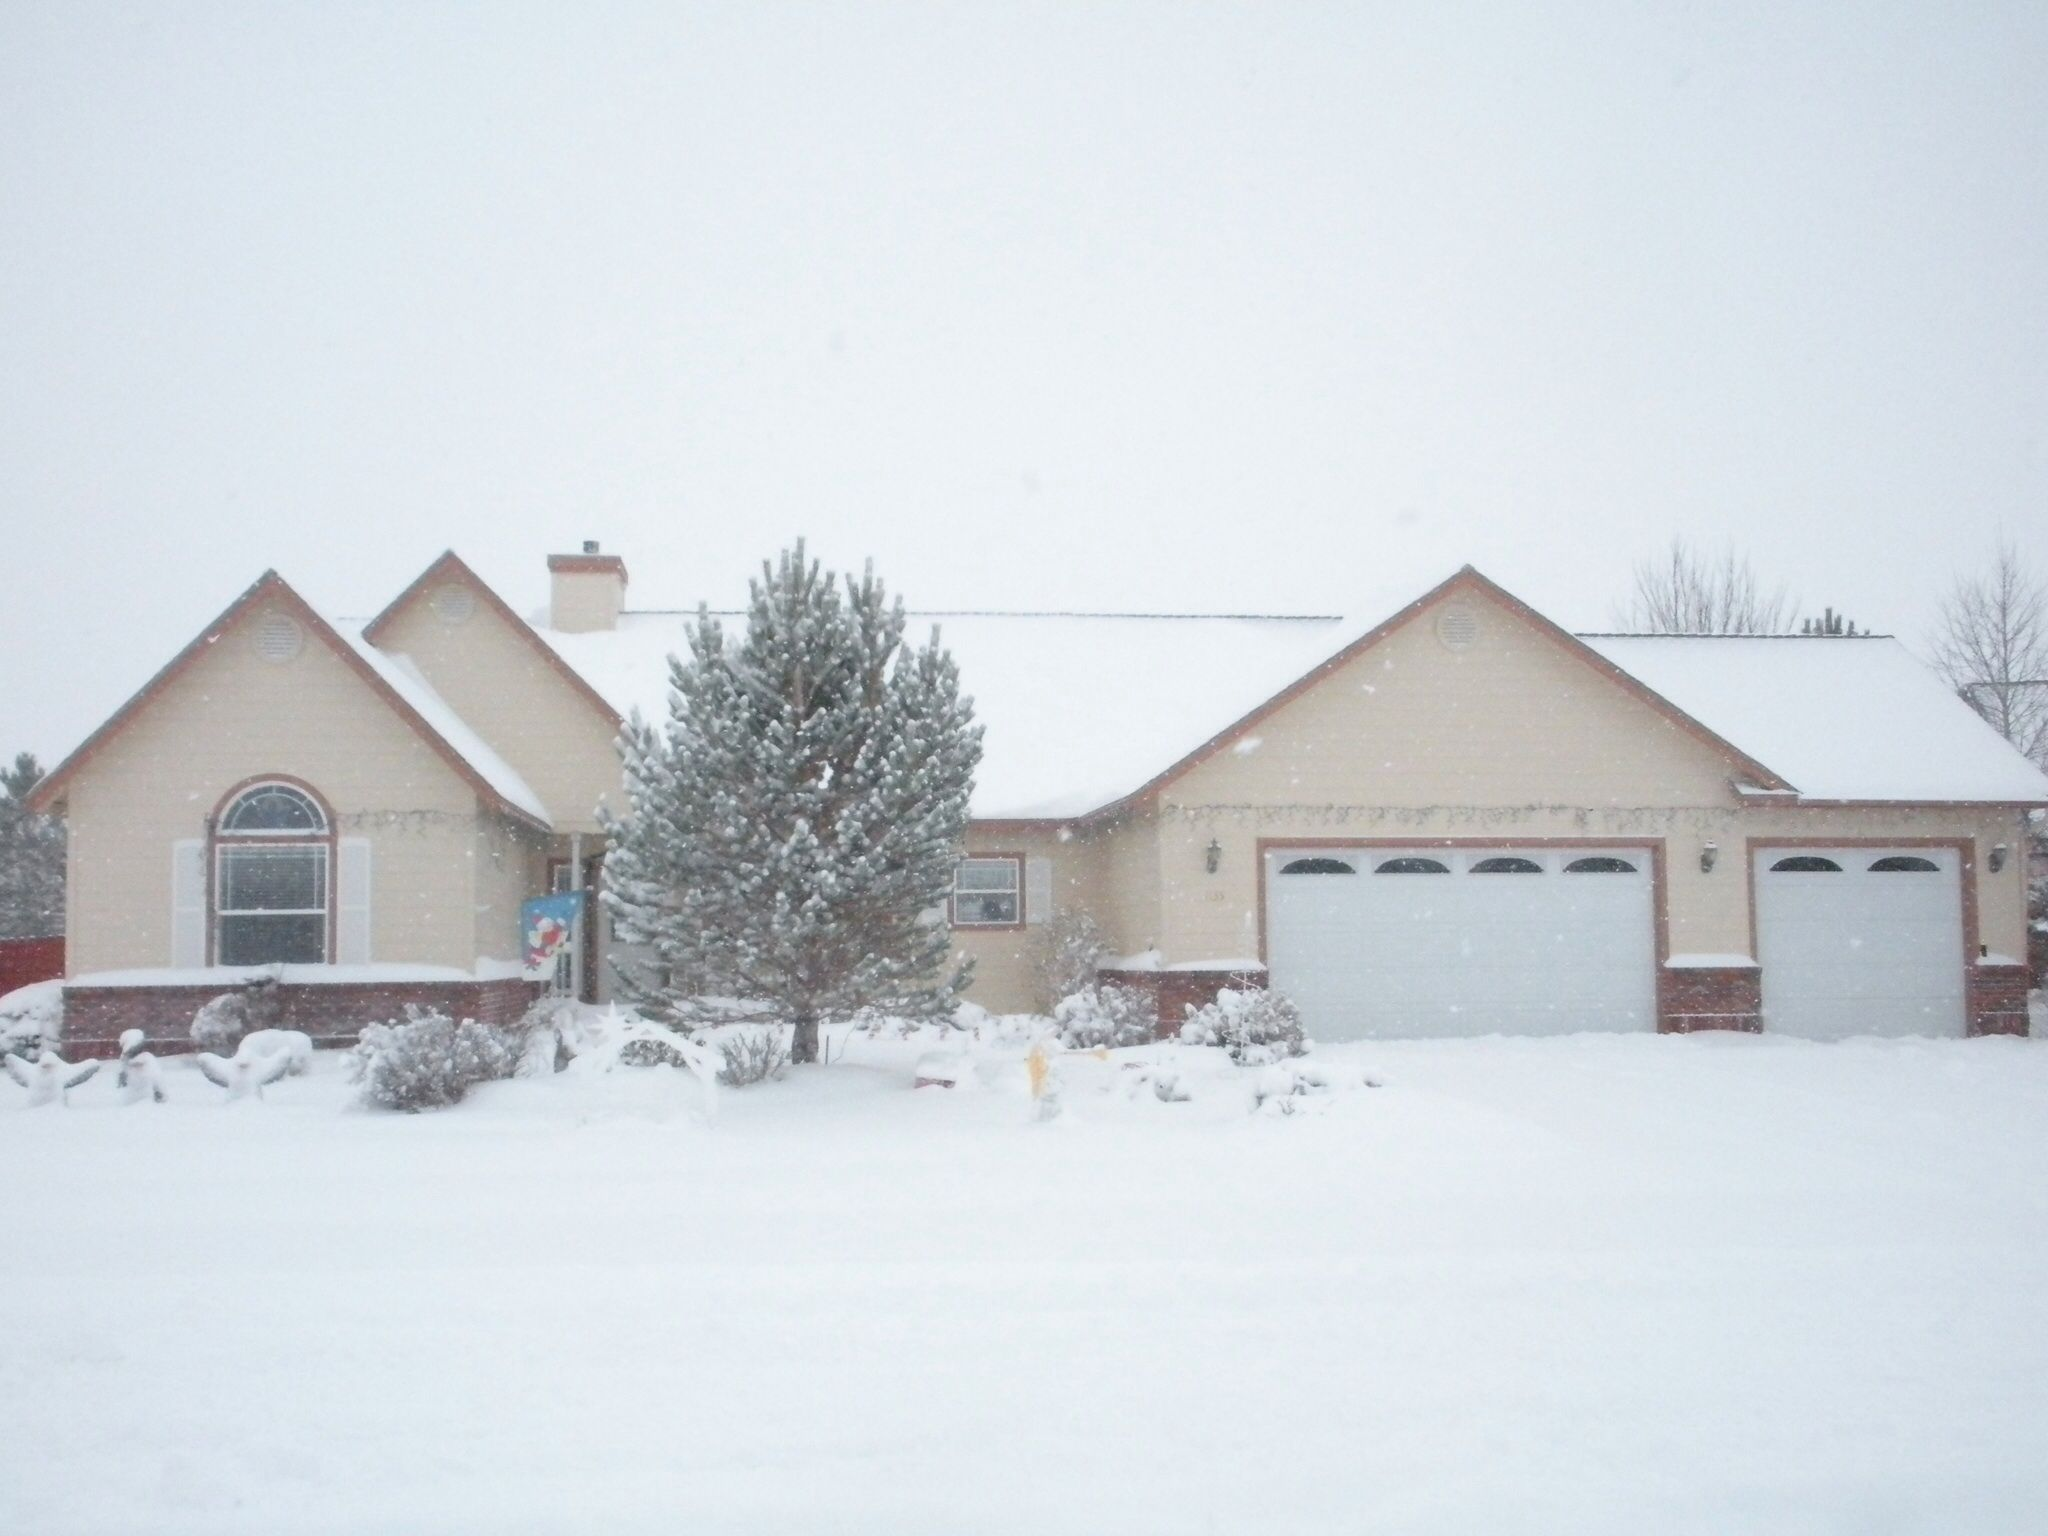 Our house in Minden, Nevada.